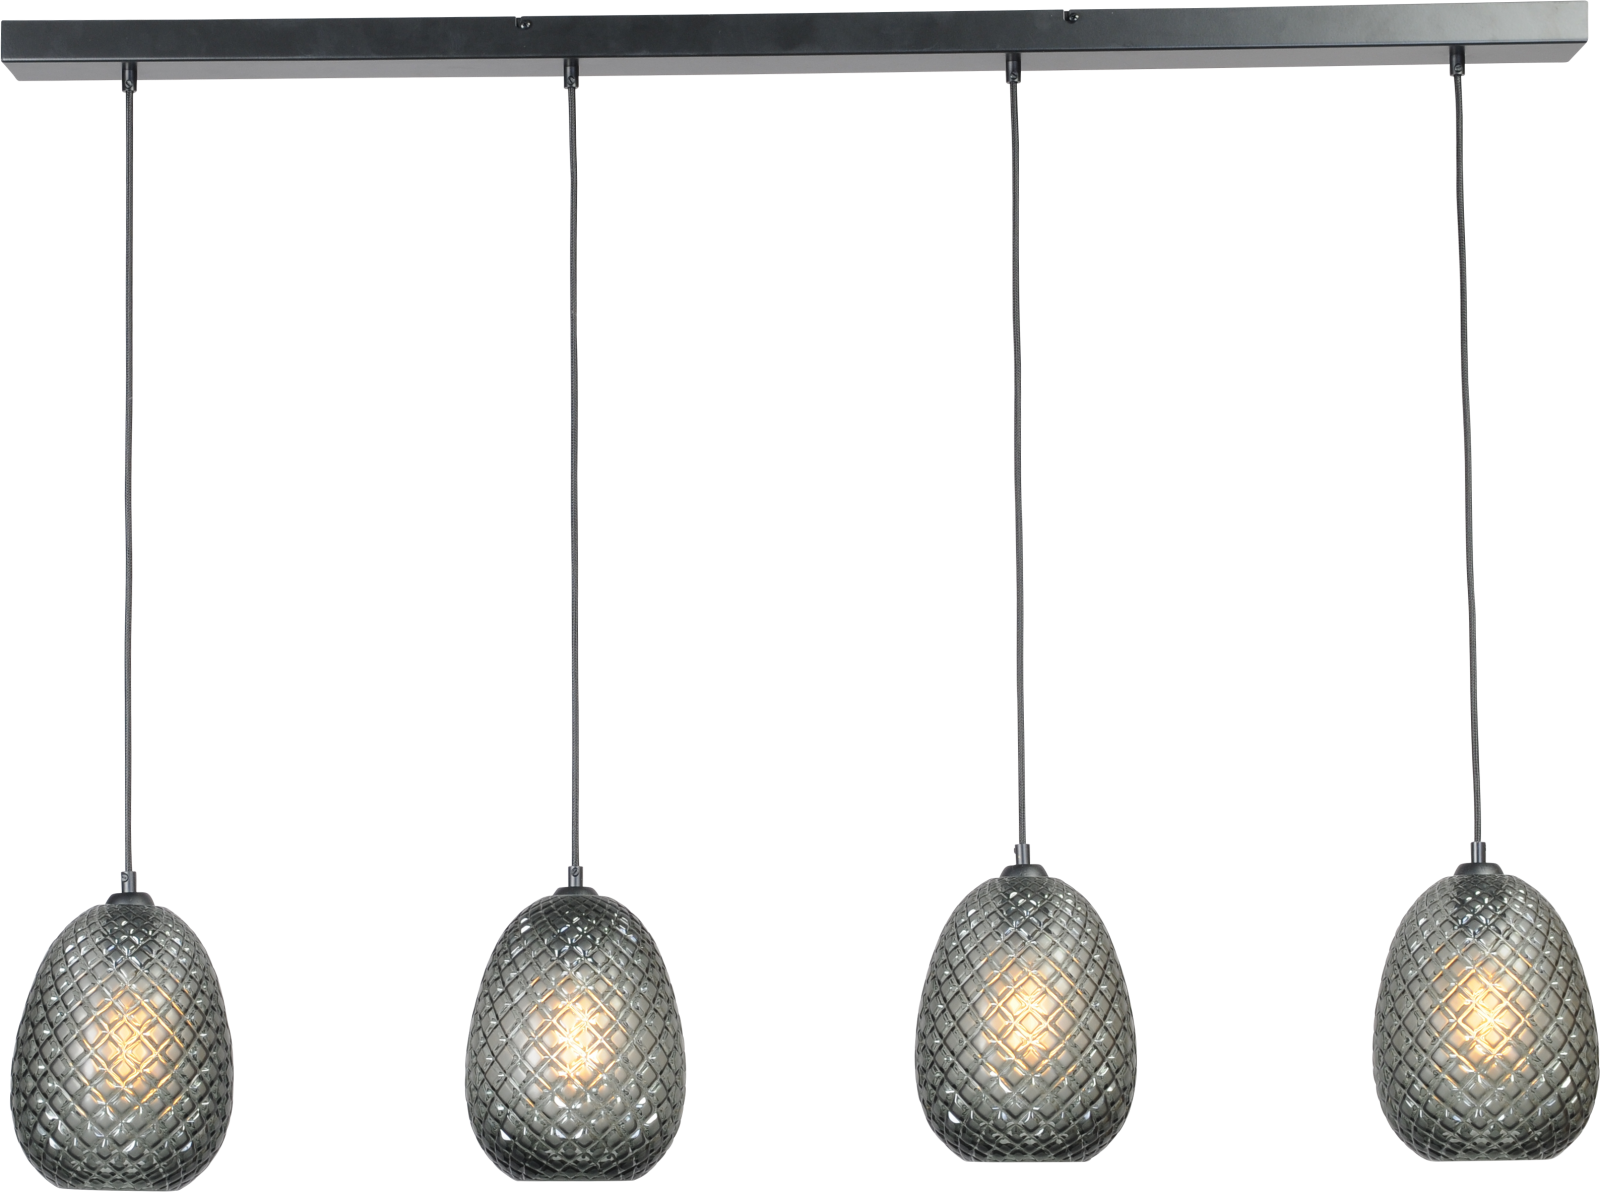 Pineapple HL PINEAPPLE BLACK 4-LIGHT BEAM BLACK 130X8CM